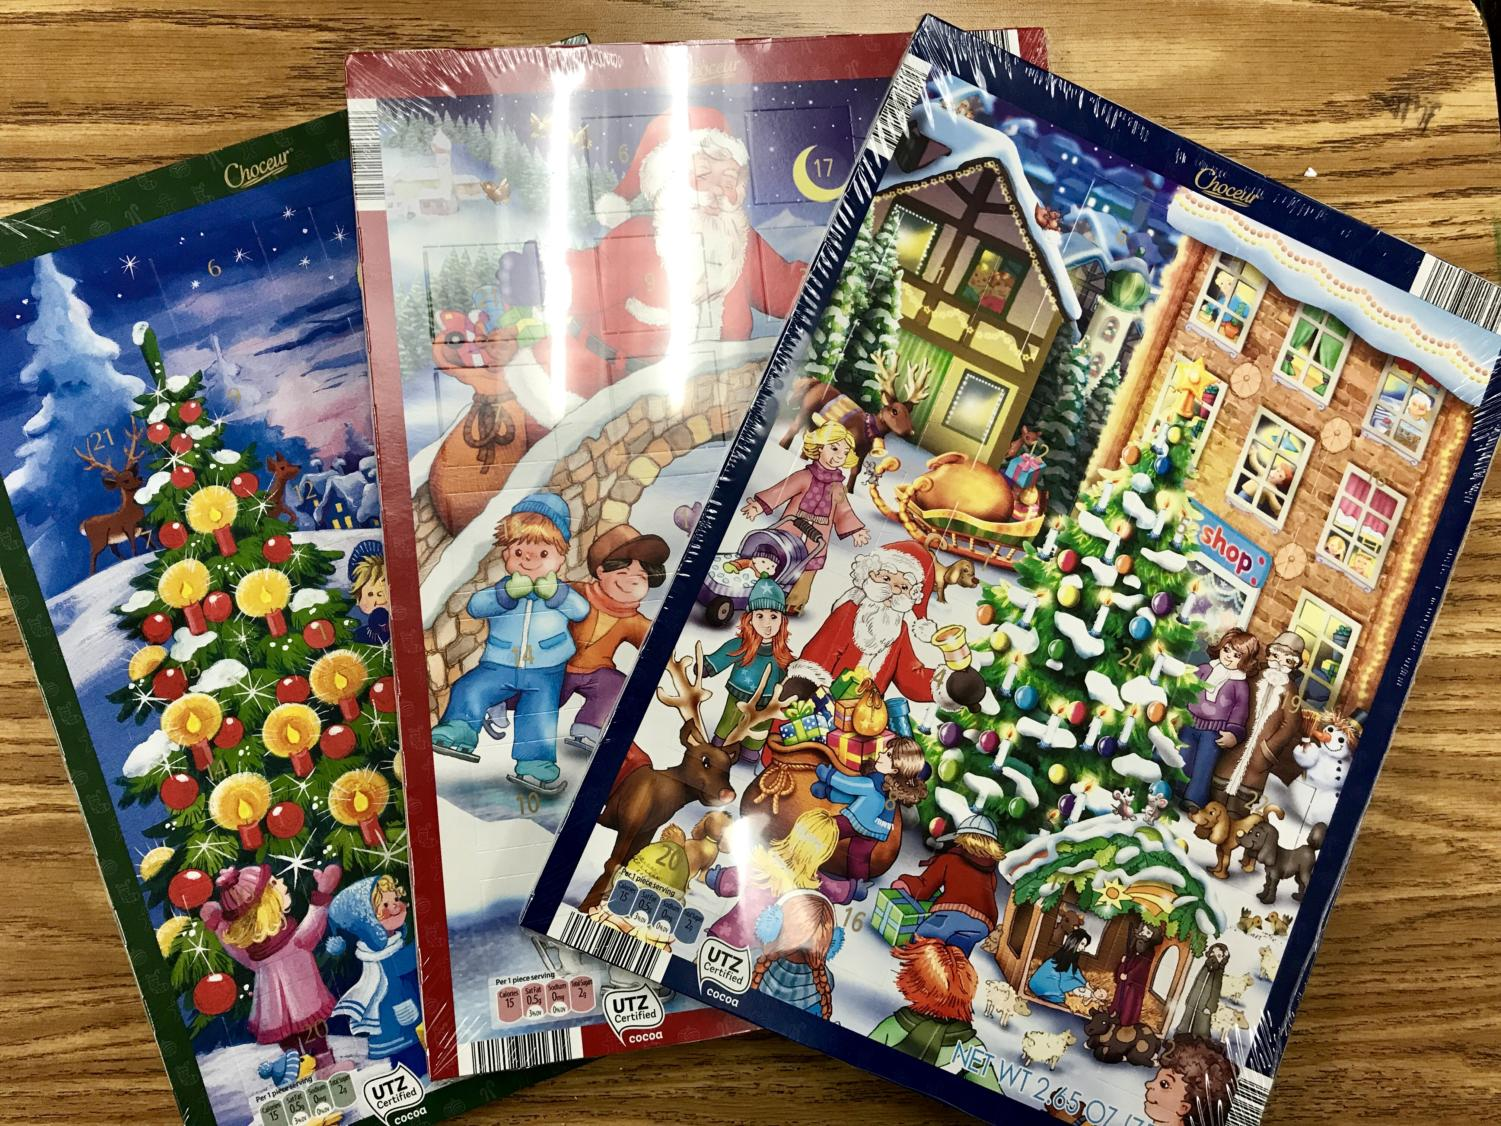 Buy a German Advent Calendar for $2.50 each.